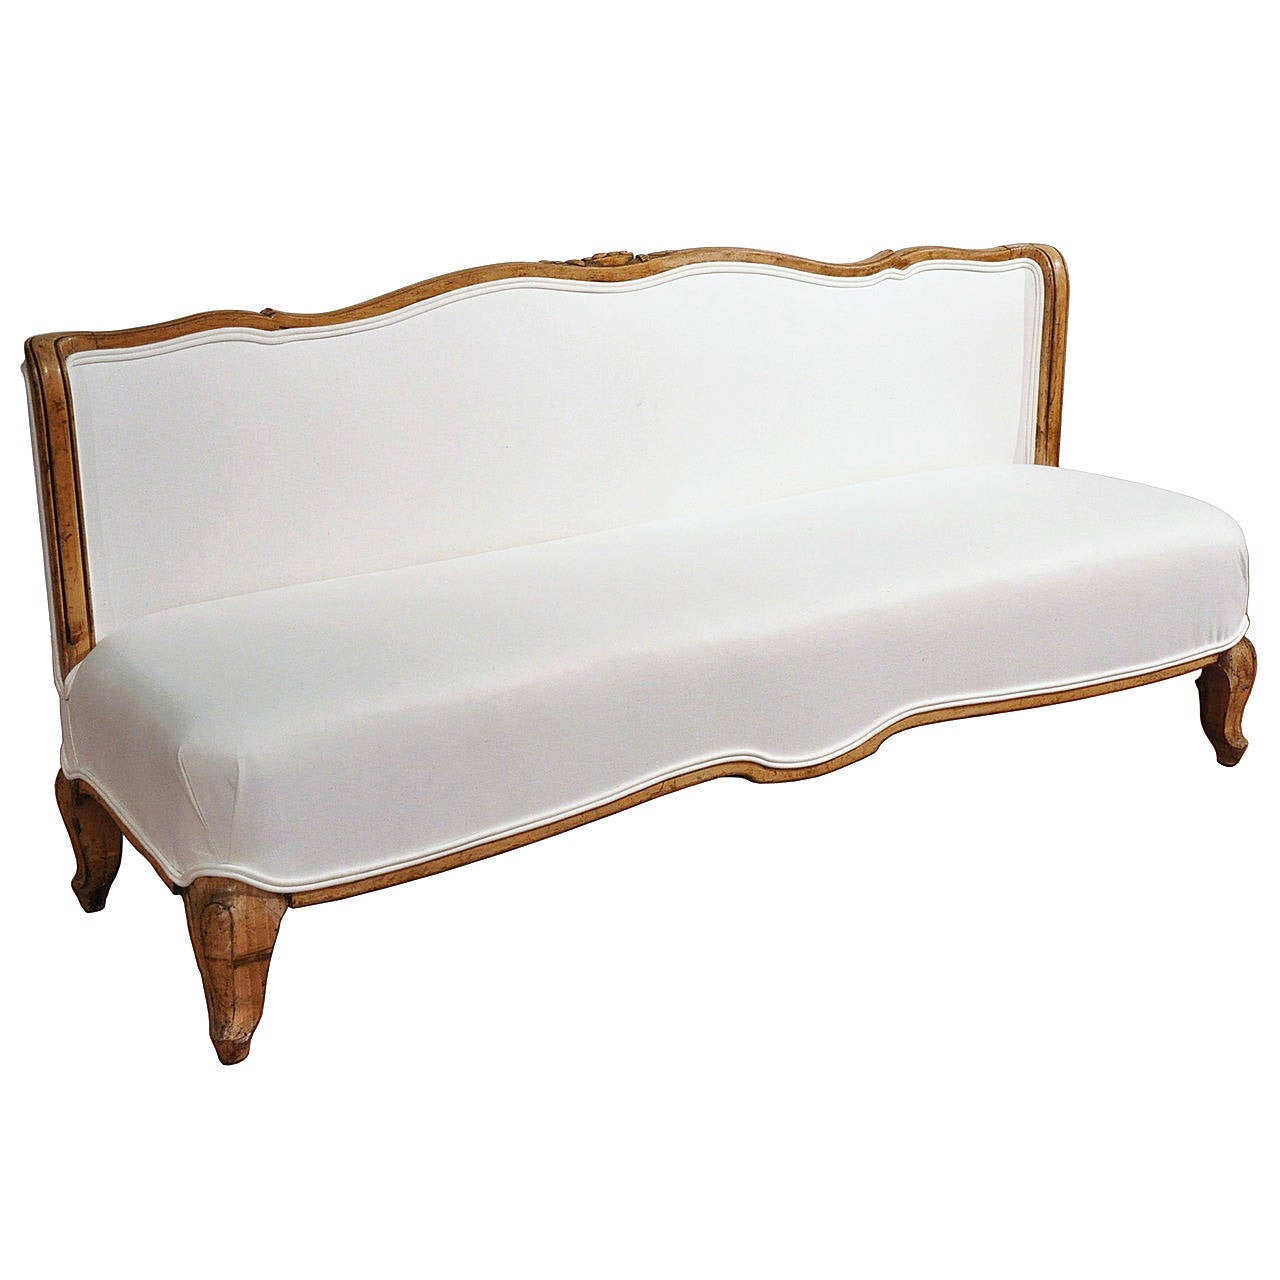 antique 18th c french louis xv bench banquette at 1stdibs. Black Bedroom Furniture Sets. Home Design Ideas